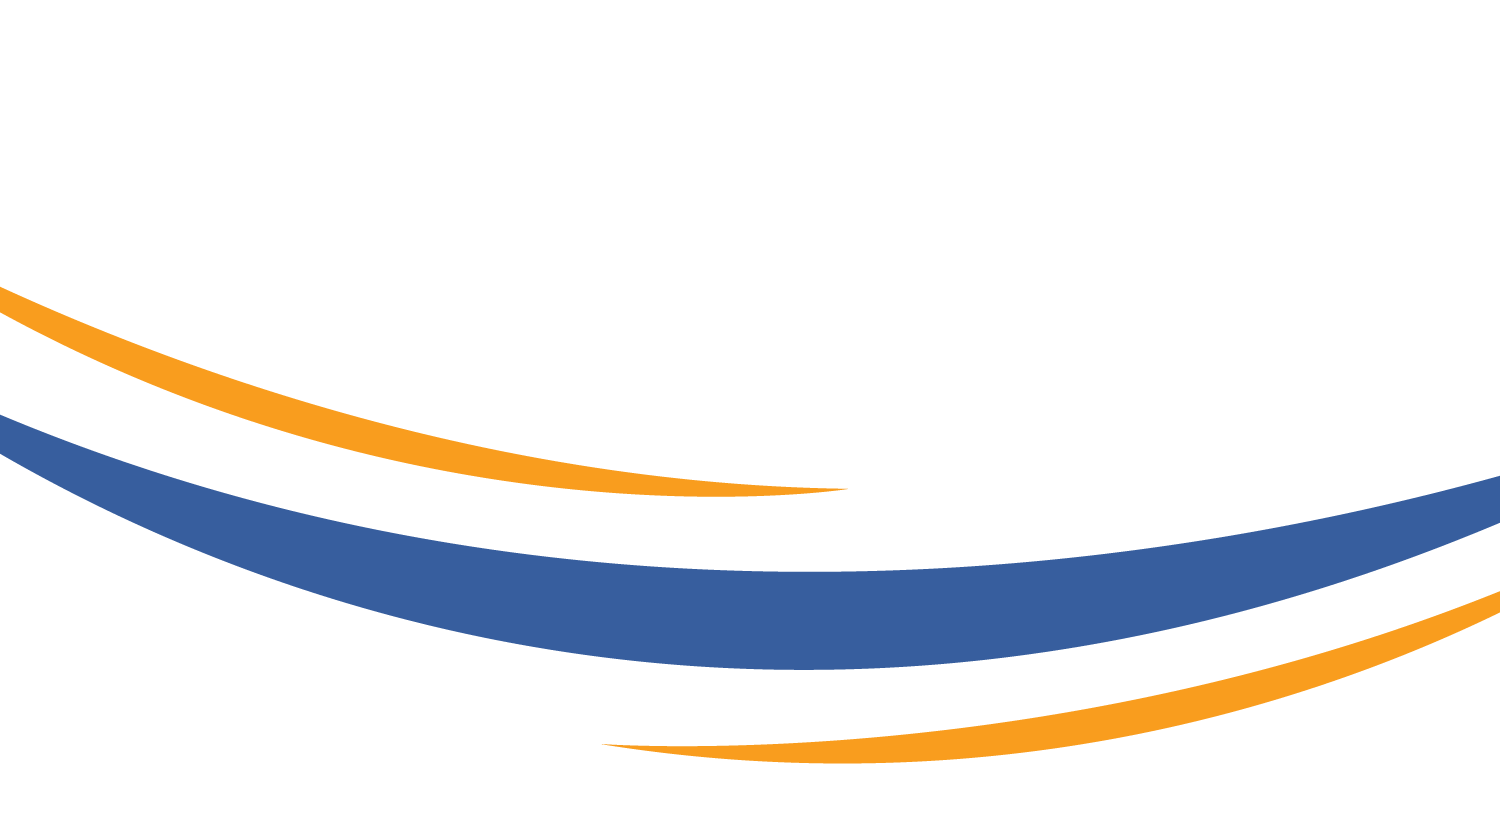 Enteris BioPharma orange-and-medium-blue lower logo swoosh